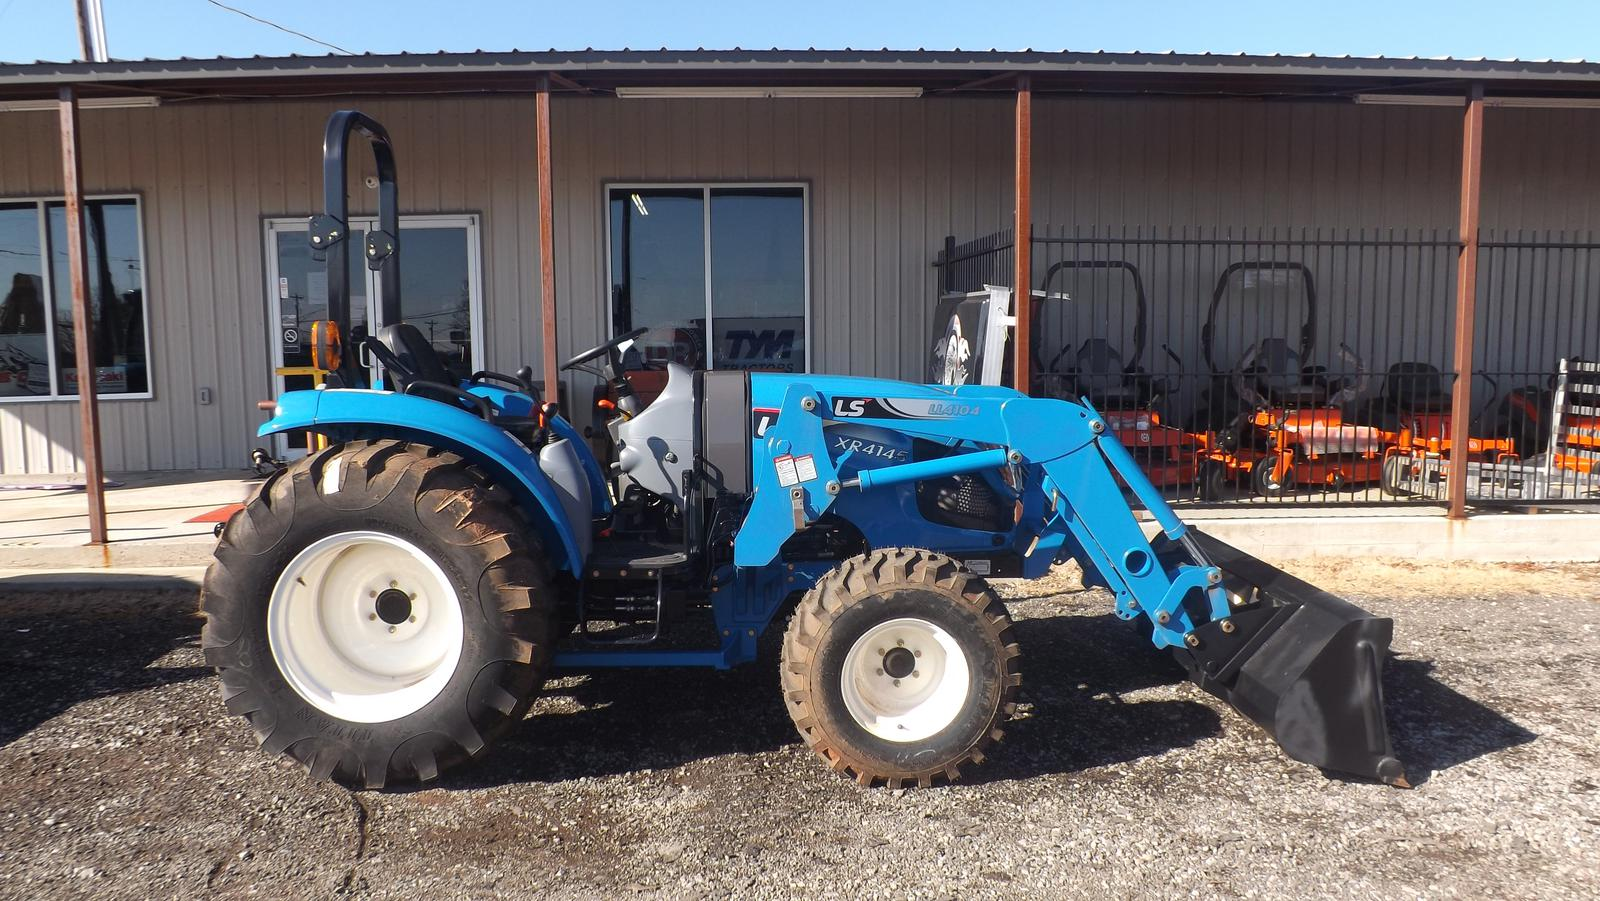 2018 LS Tractor XR4140 for sale in Oklahoma City, OK  Wright